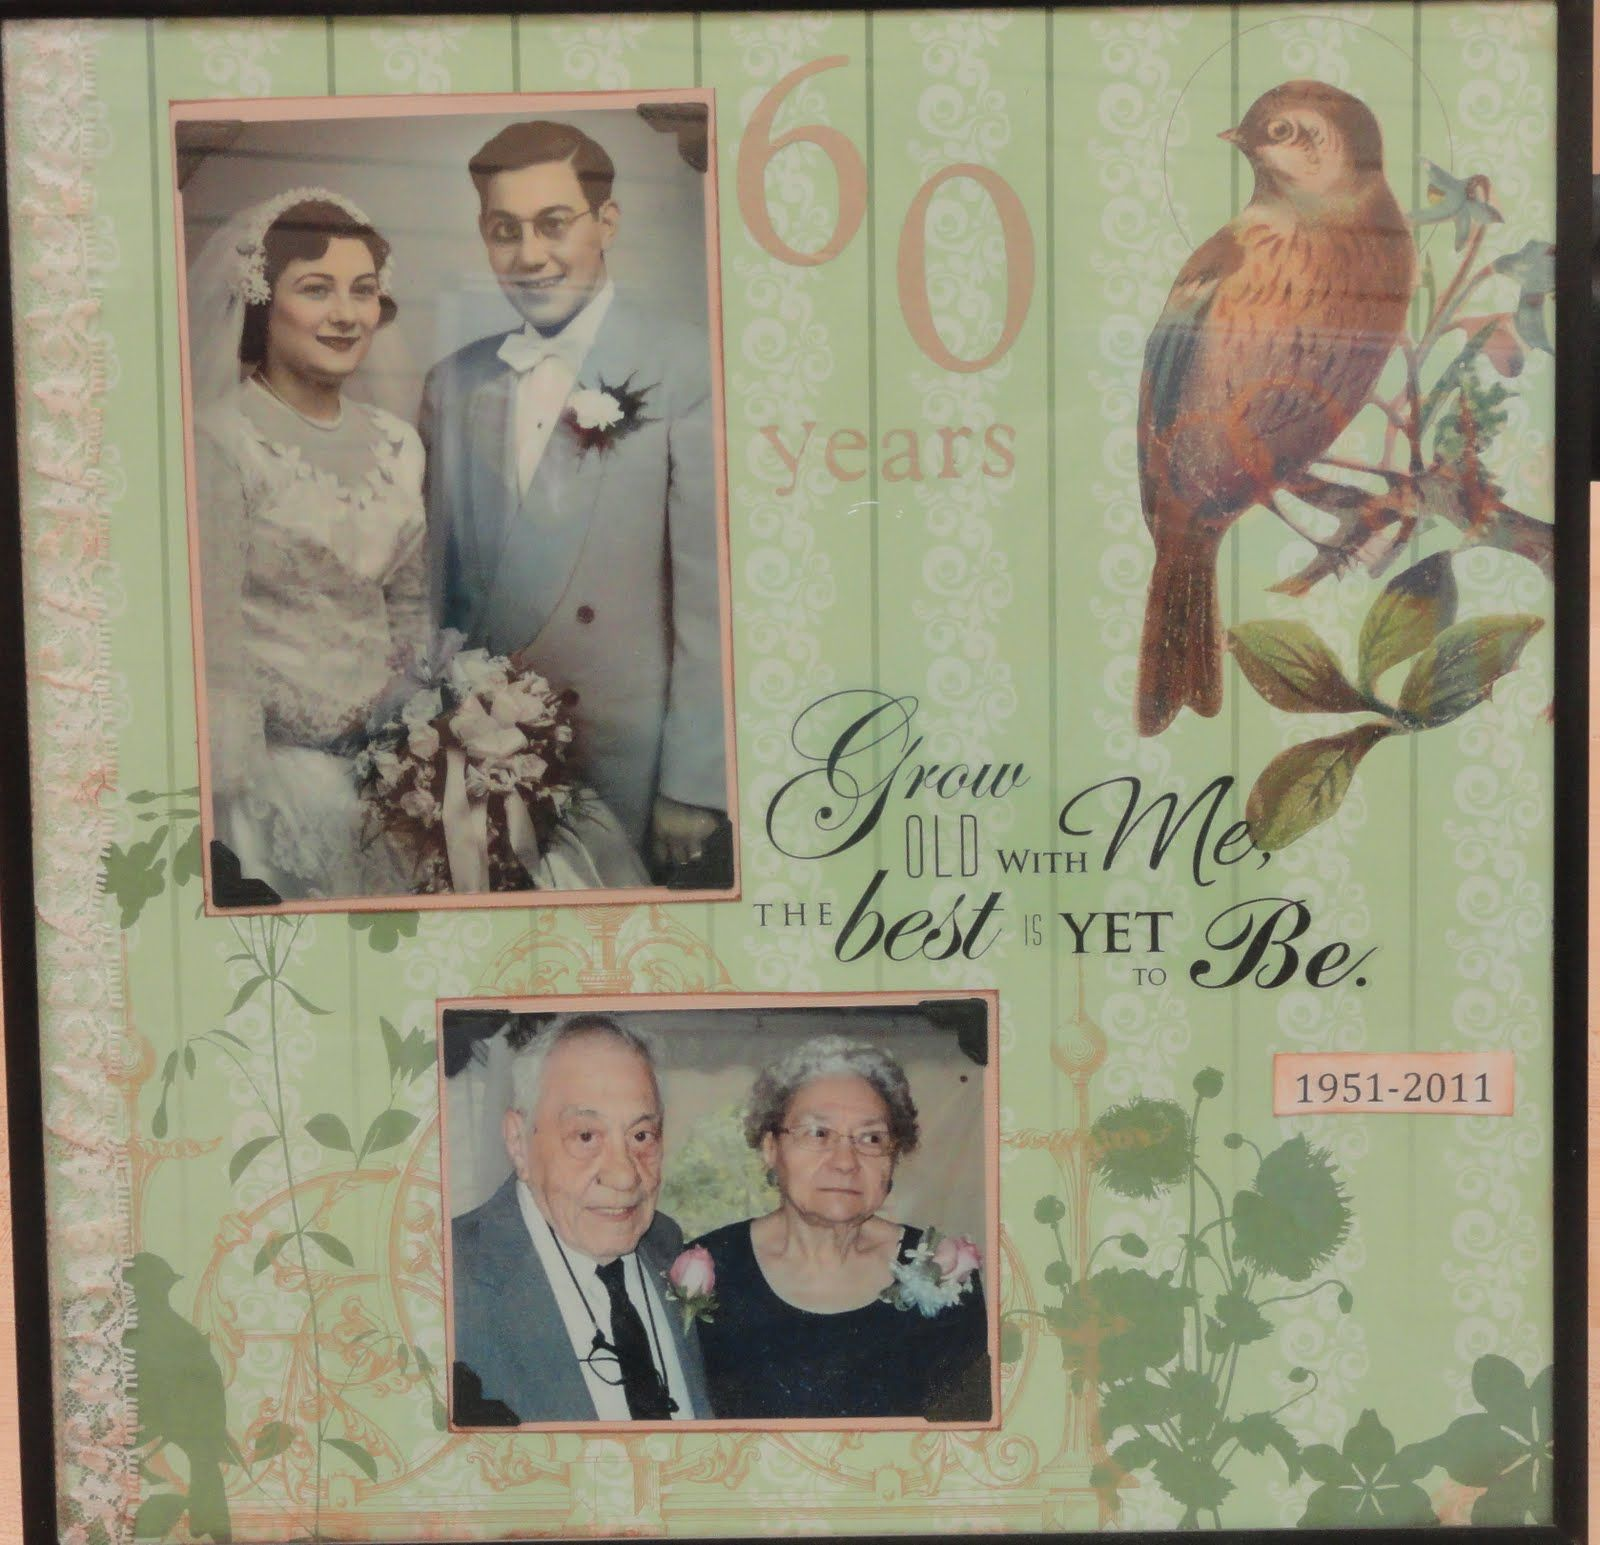 60th wedding party ideas | page 50th wedding anniversary decorations ...